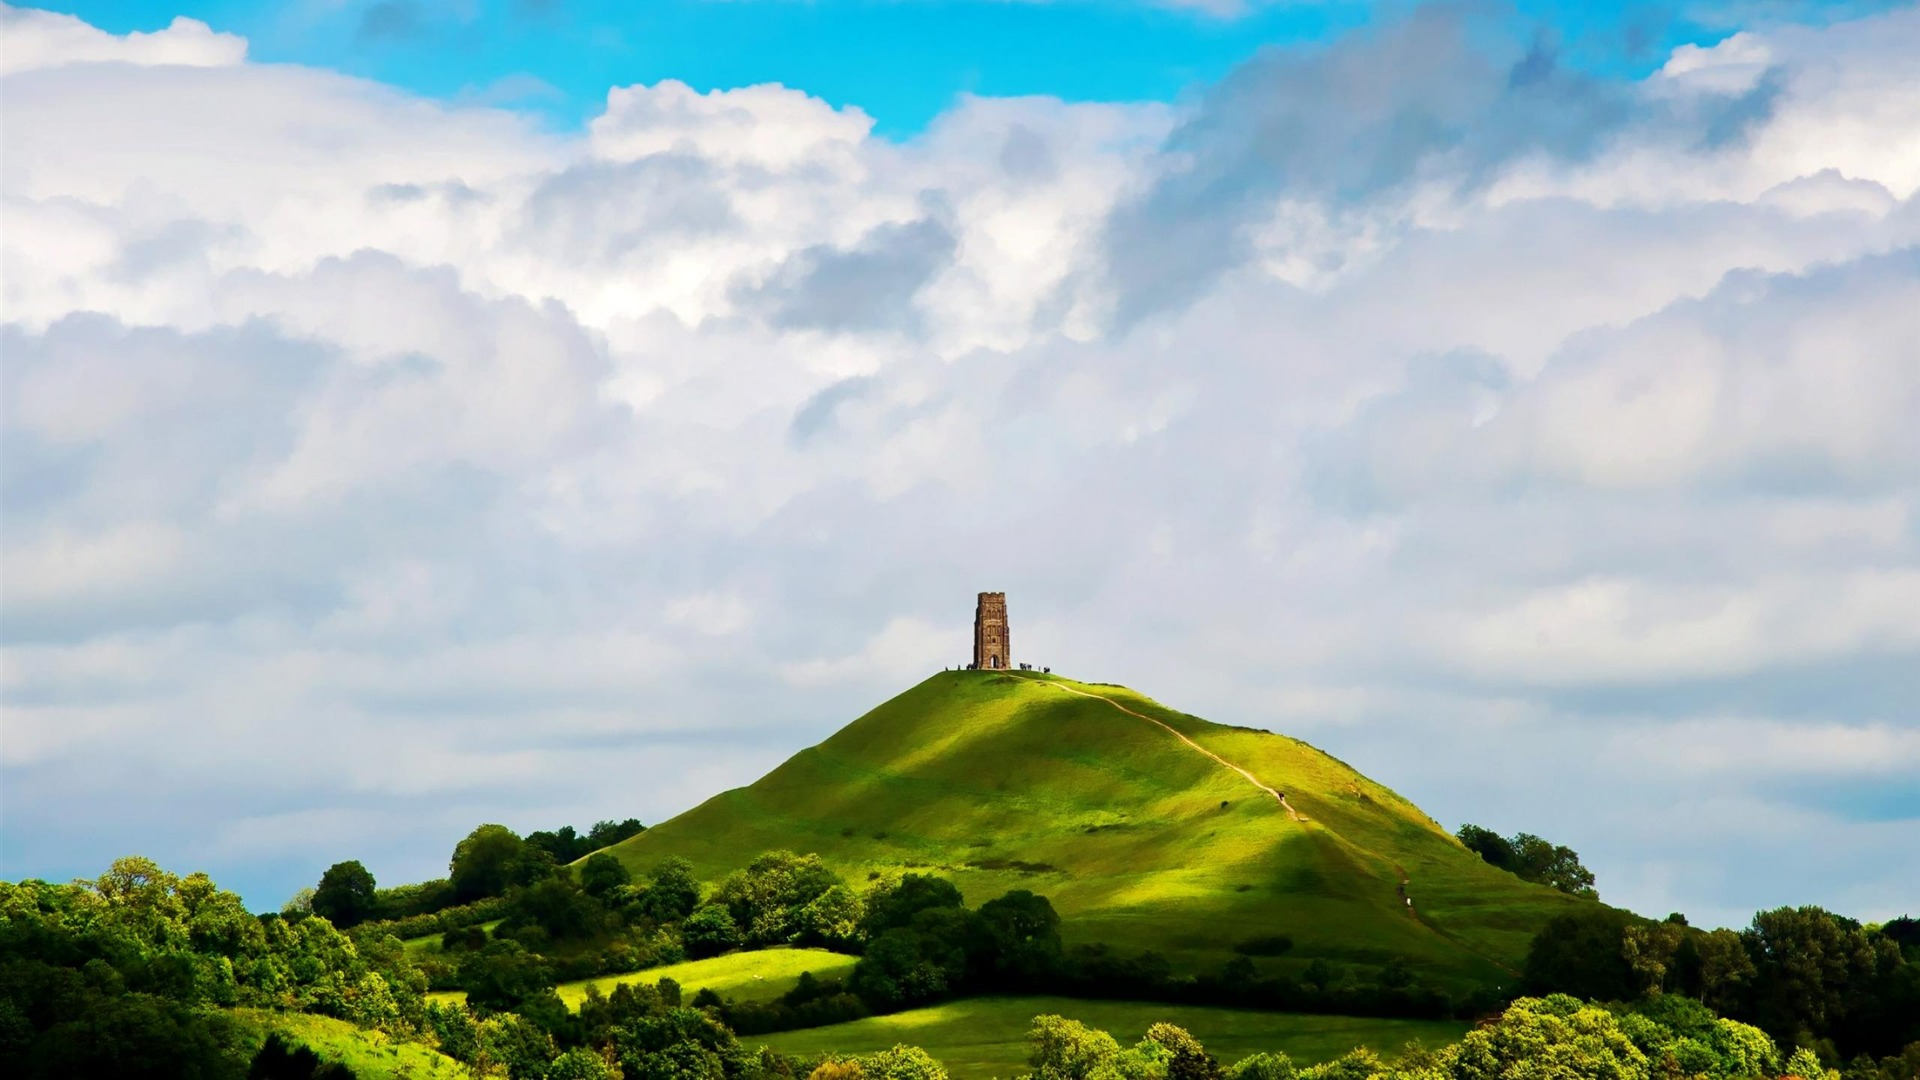 St Michaels Tower Glastonbury England Natural Scenery